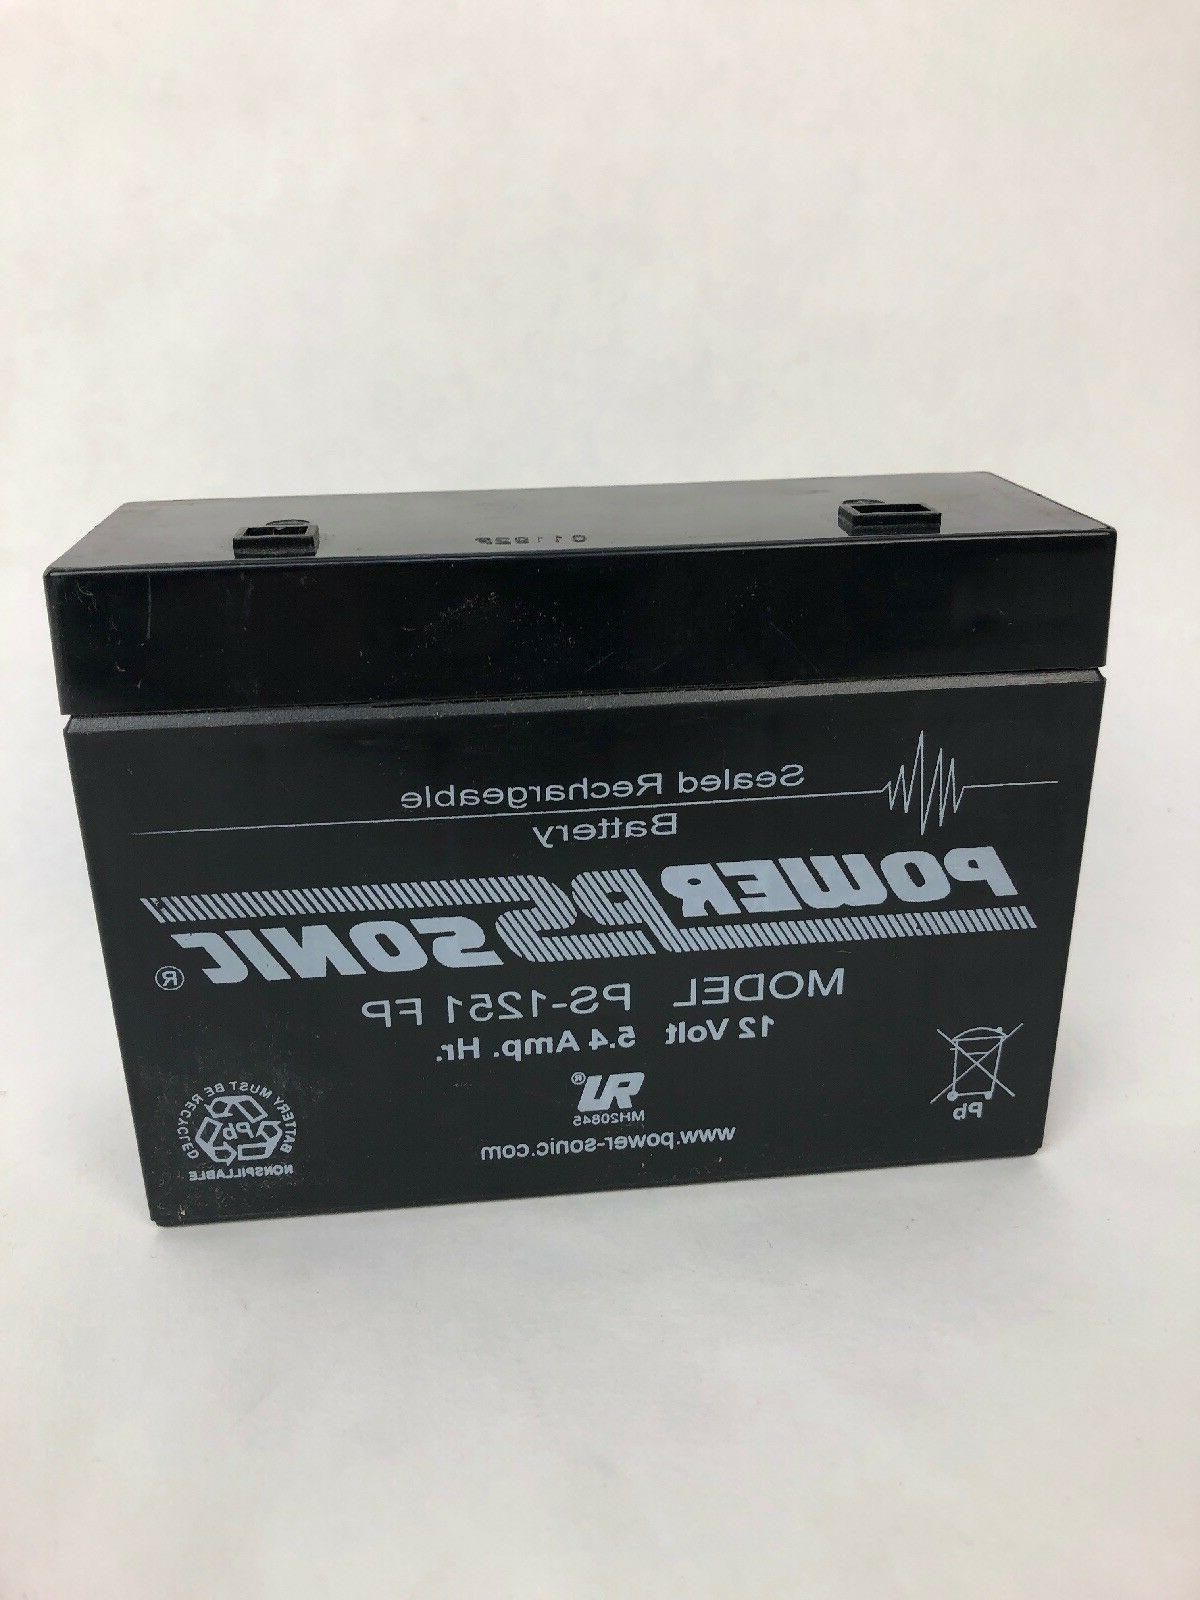 sps brand 1223w replacement battery for power